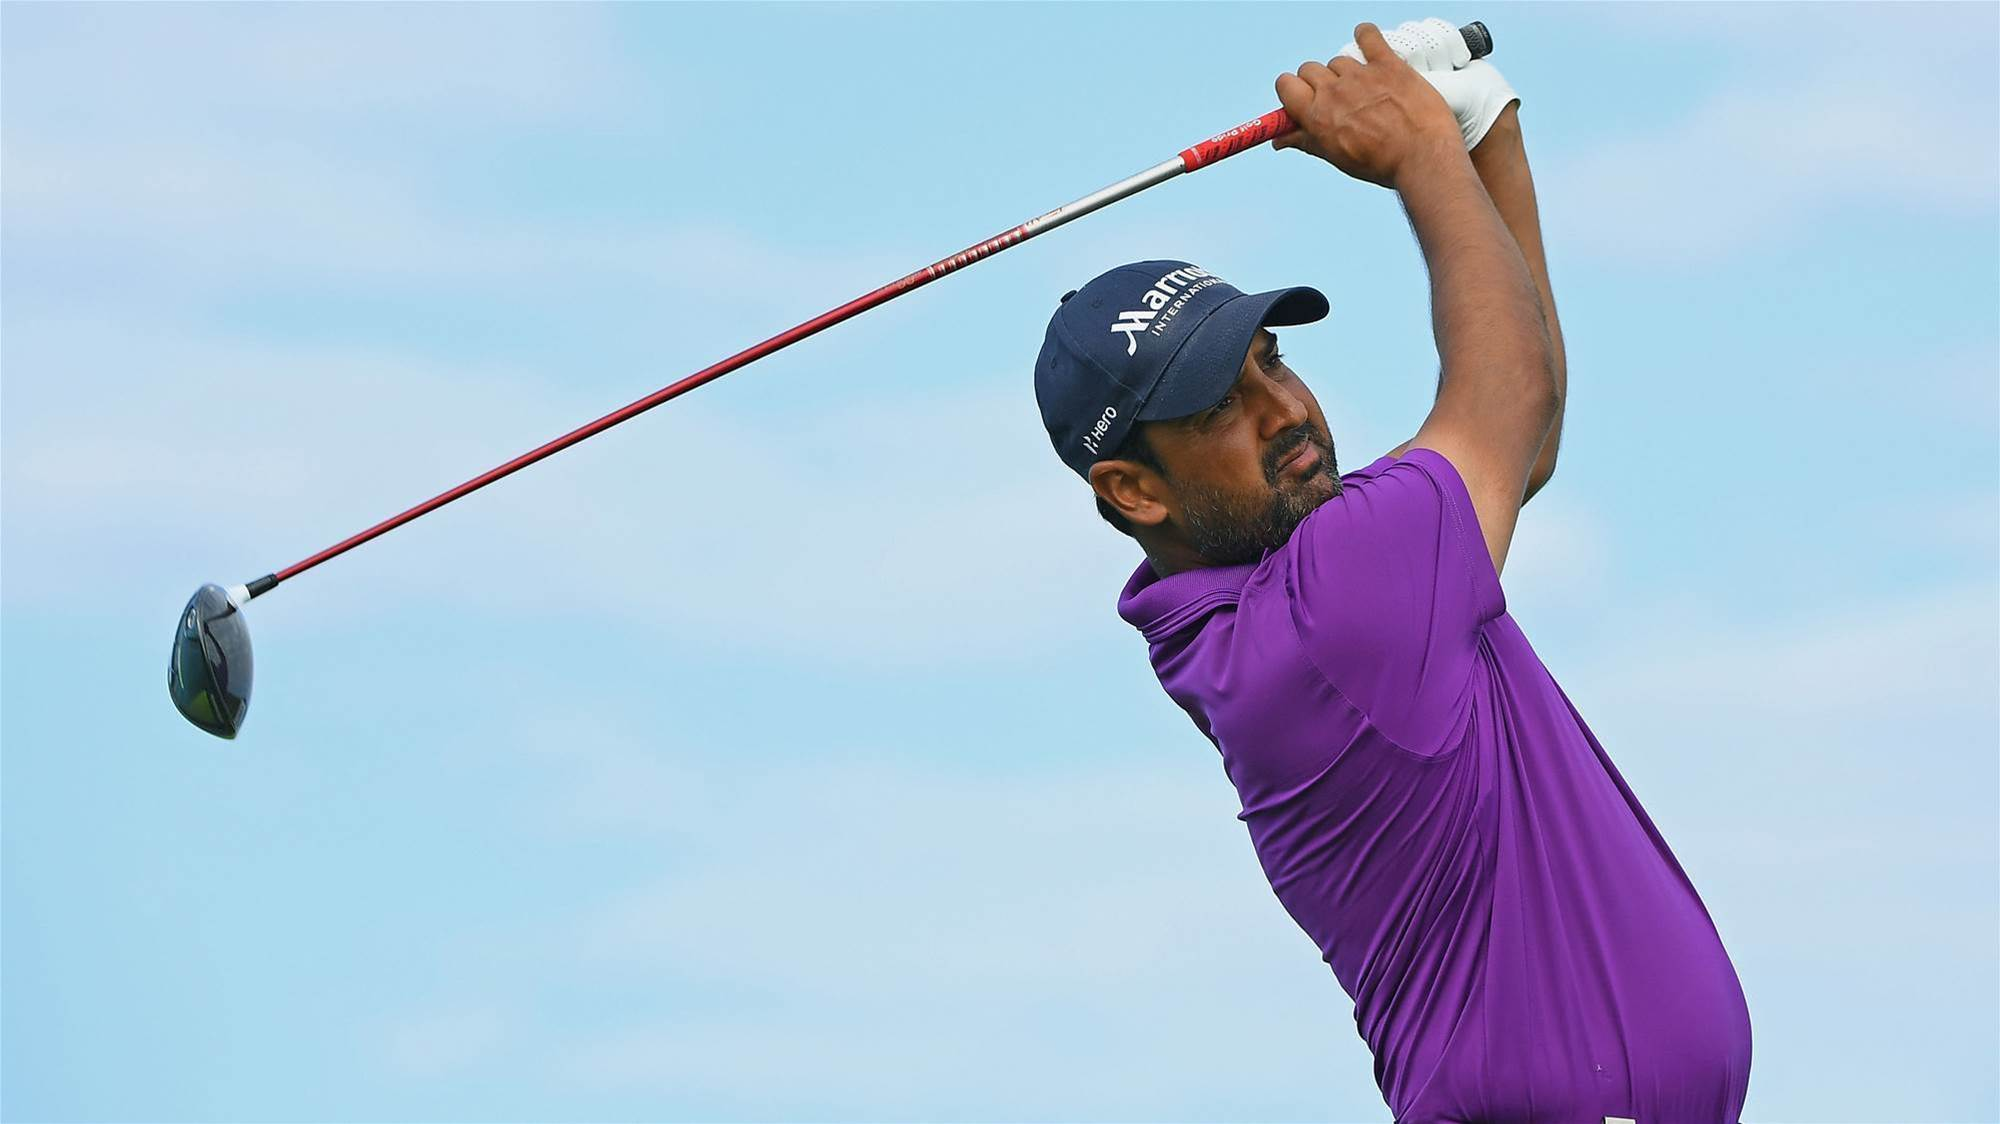 100th NZ Open: Kapur's 'high expectations'